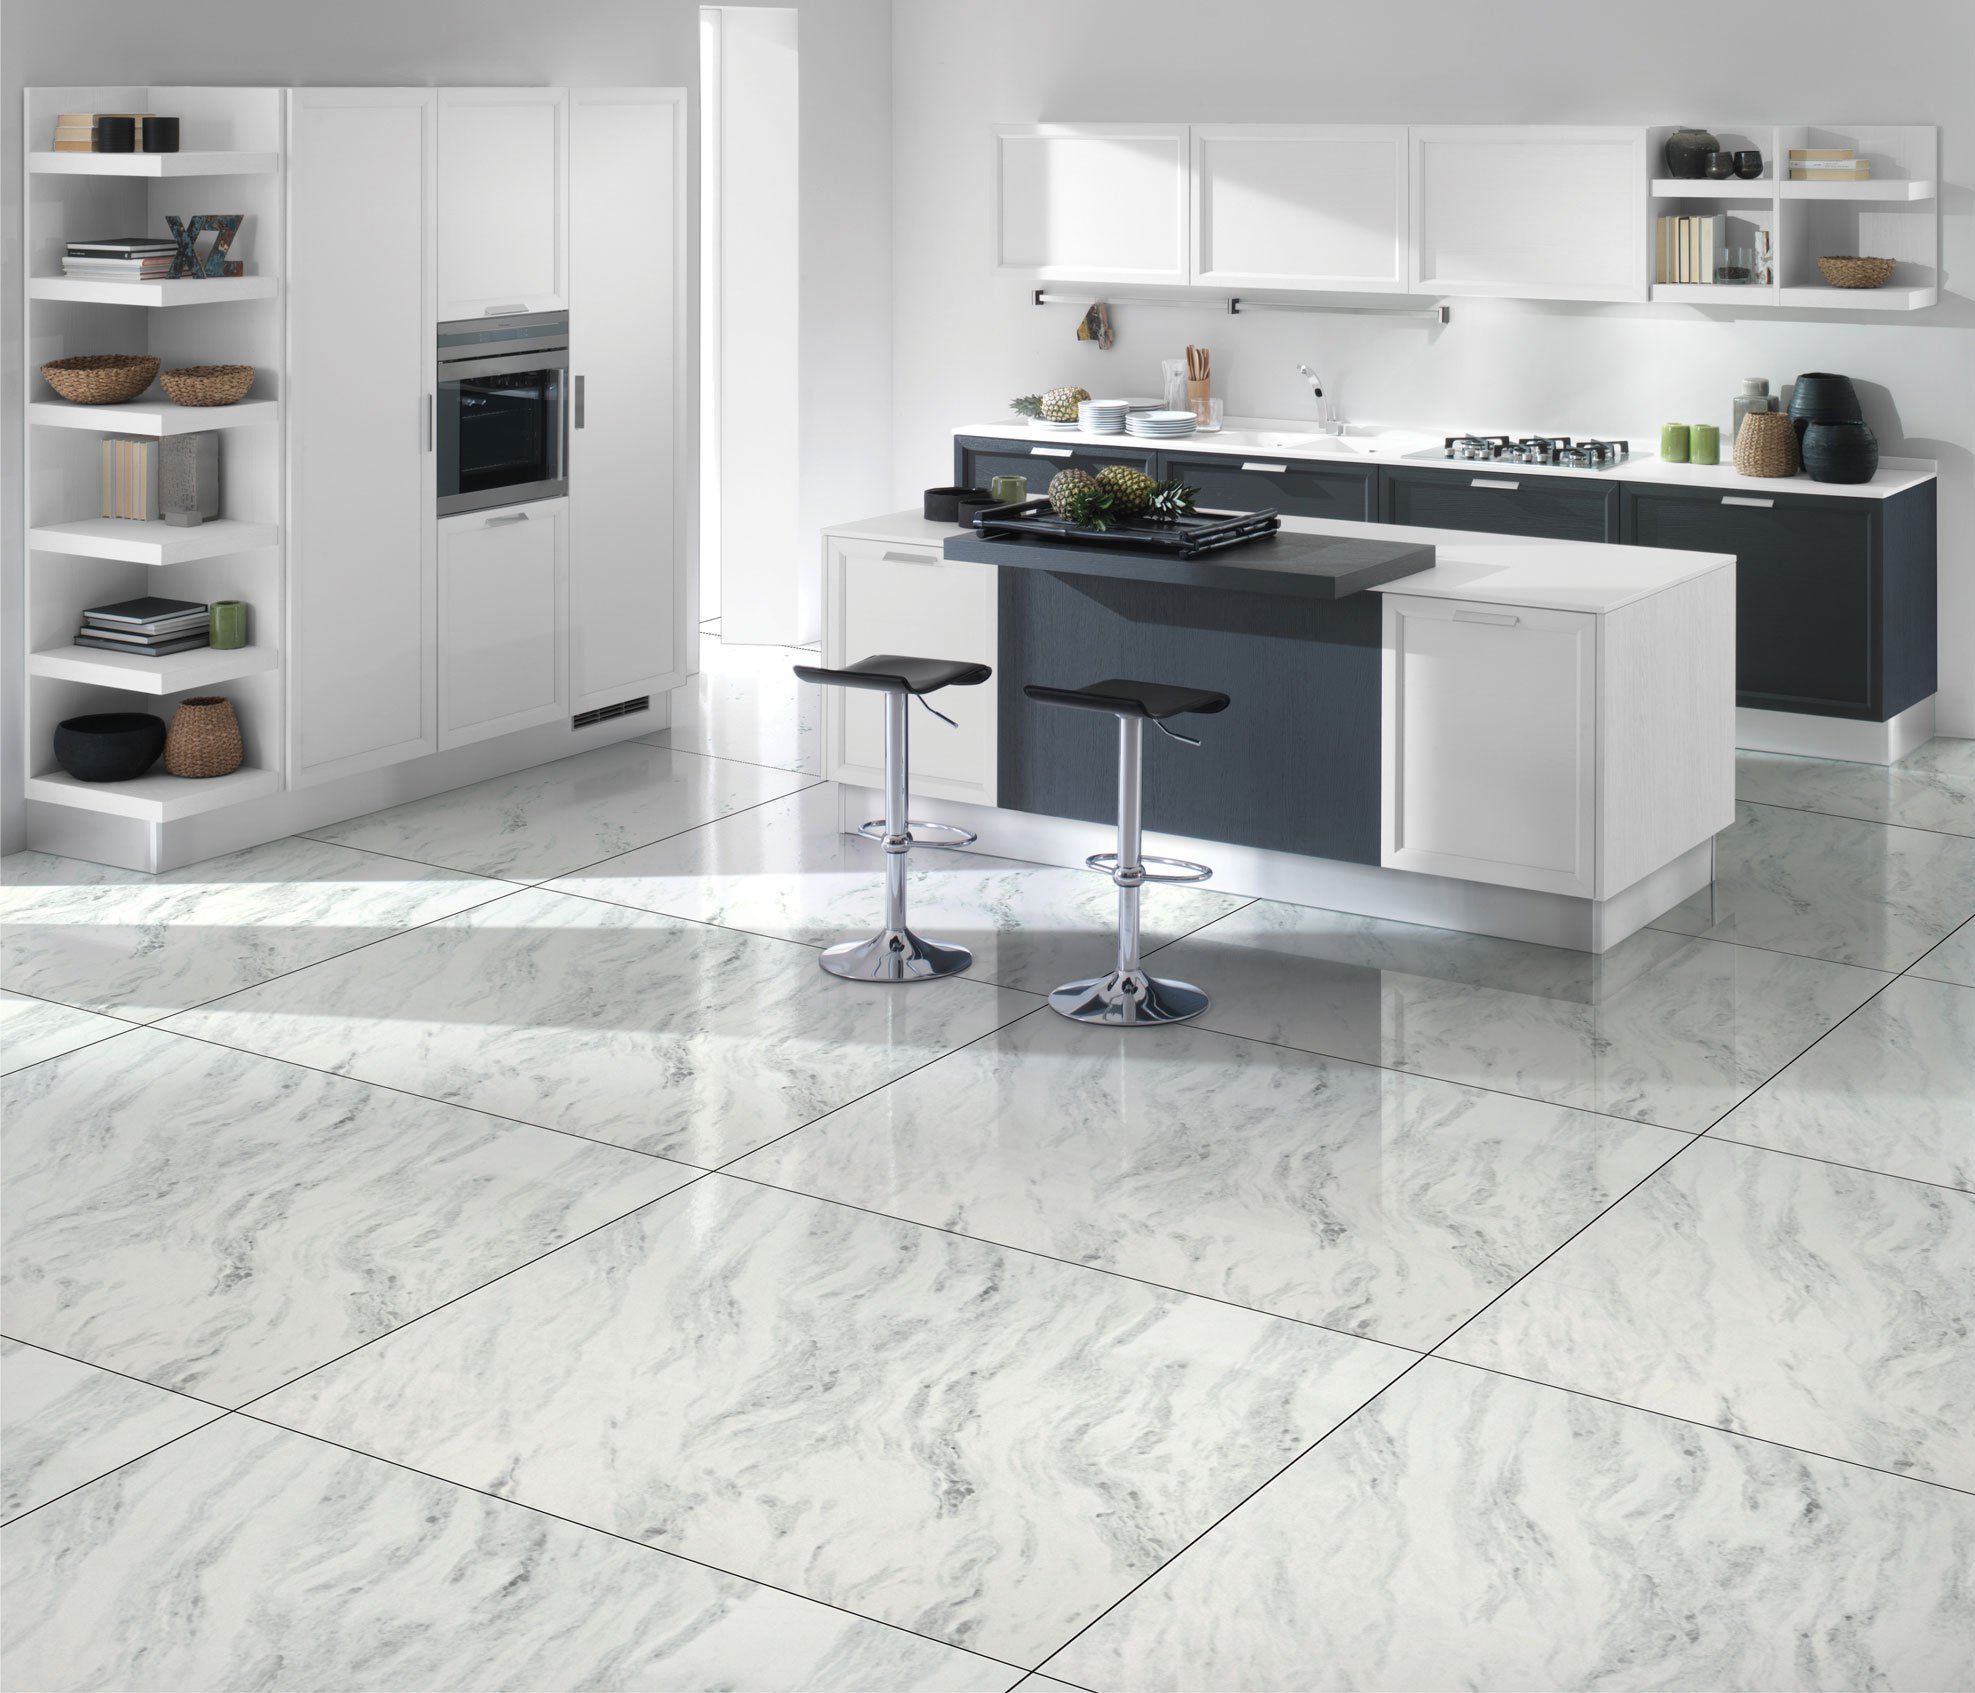 What's The Best Kitchen Floor Tile?